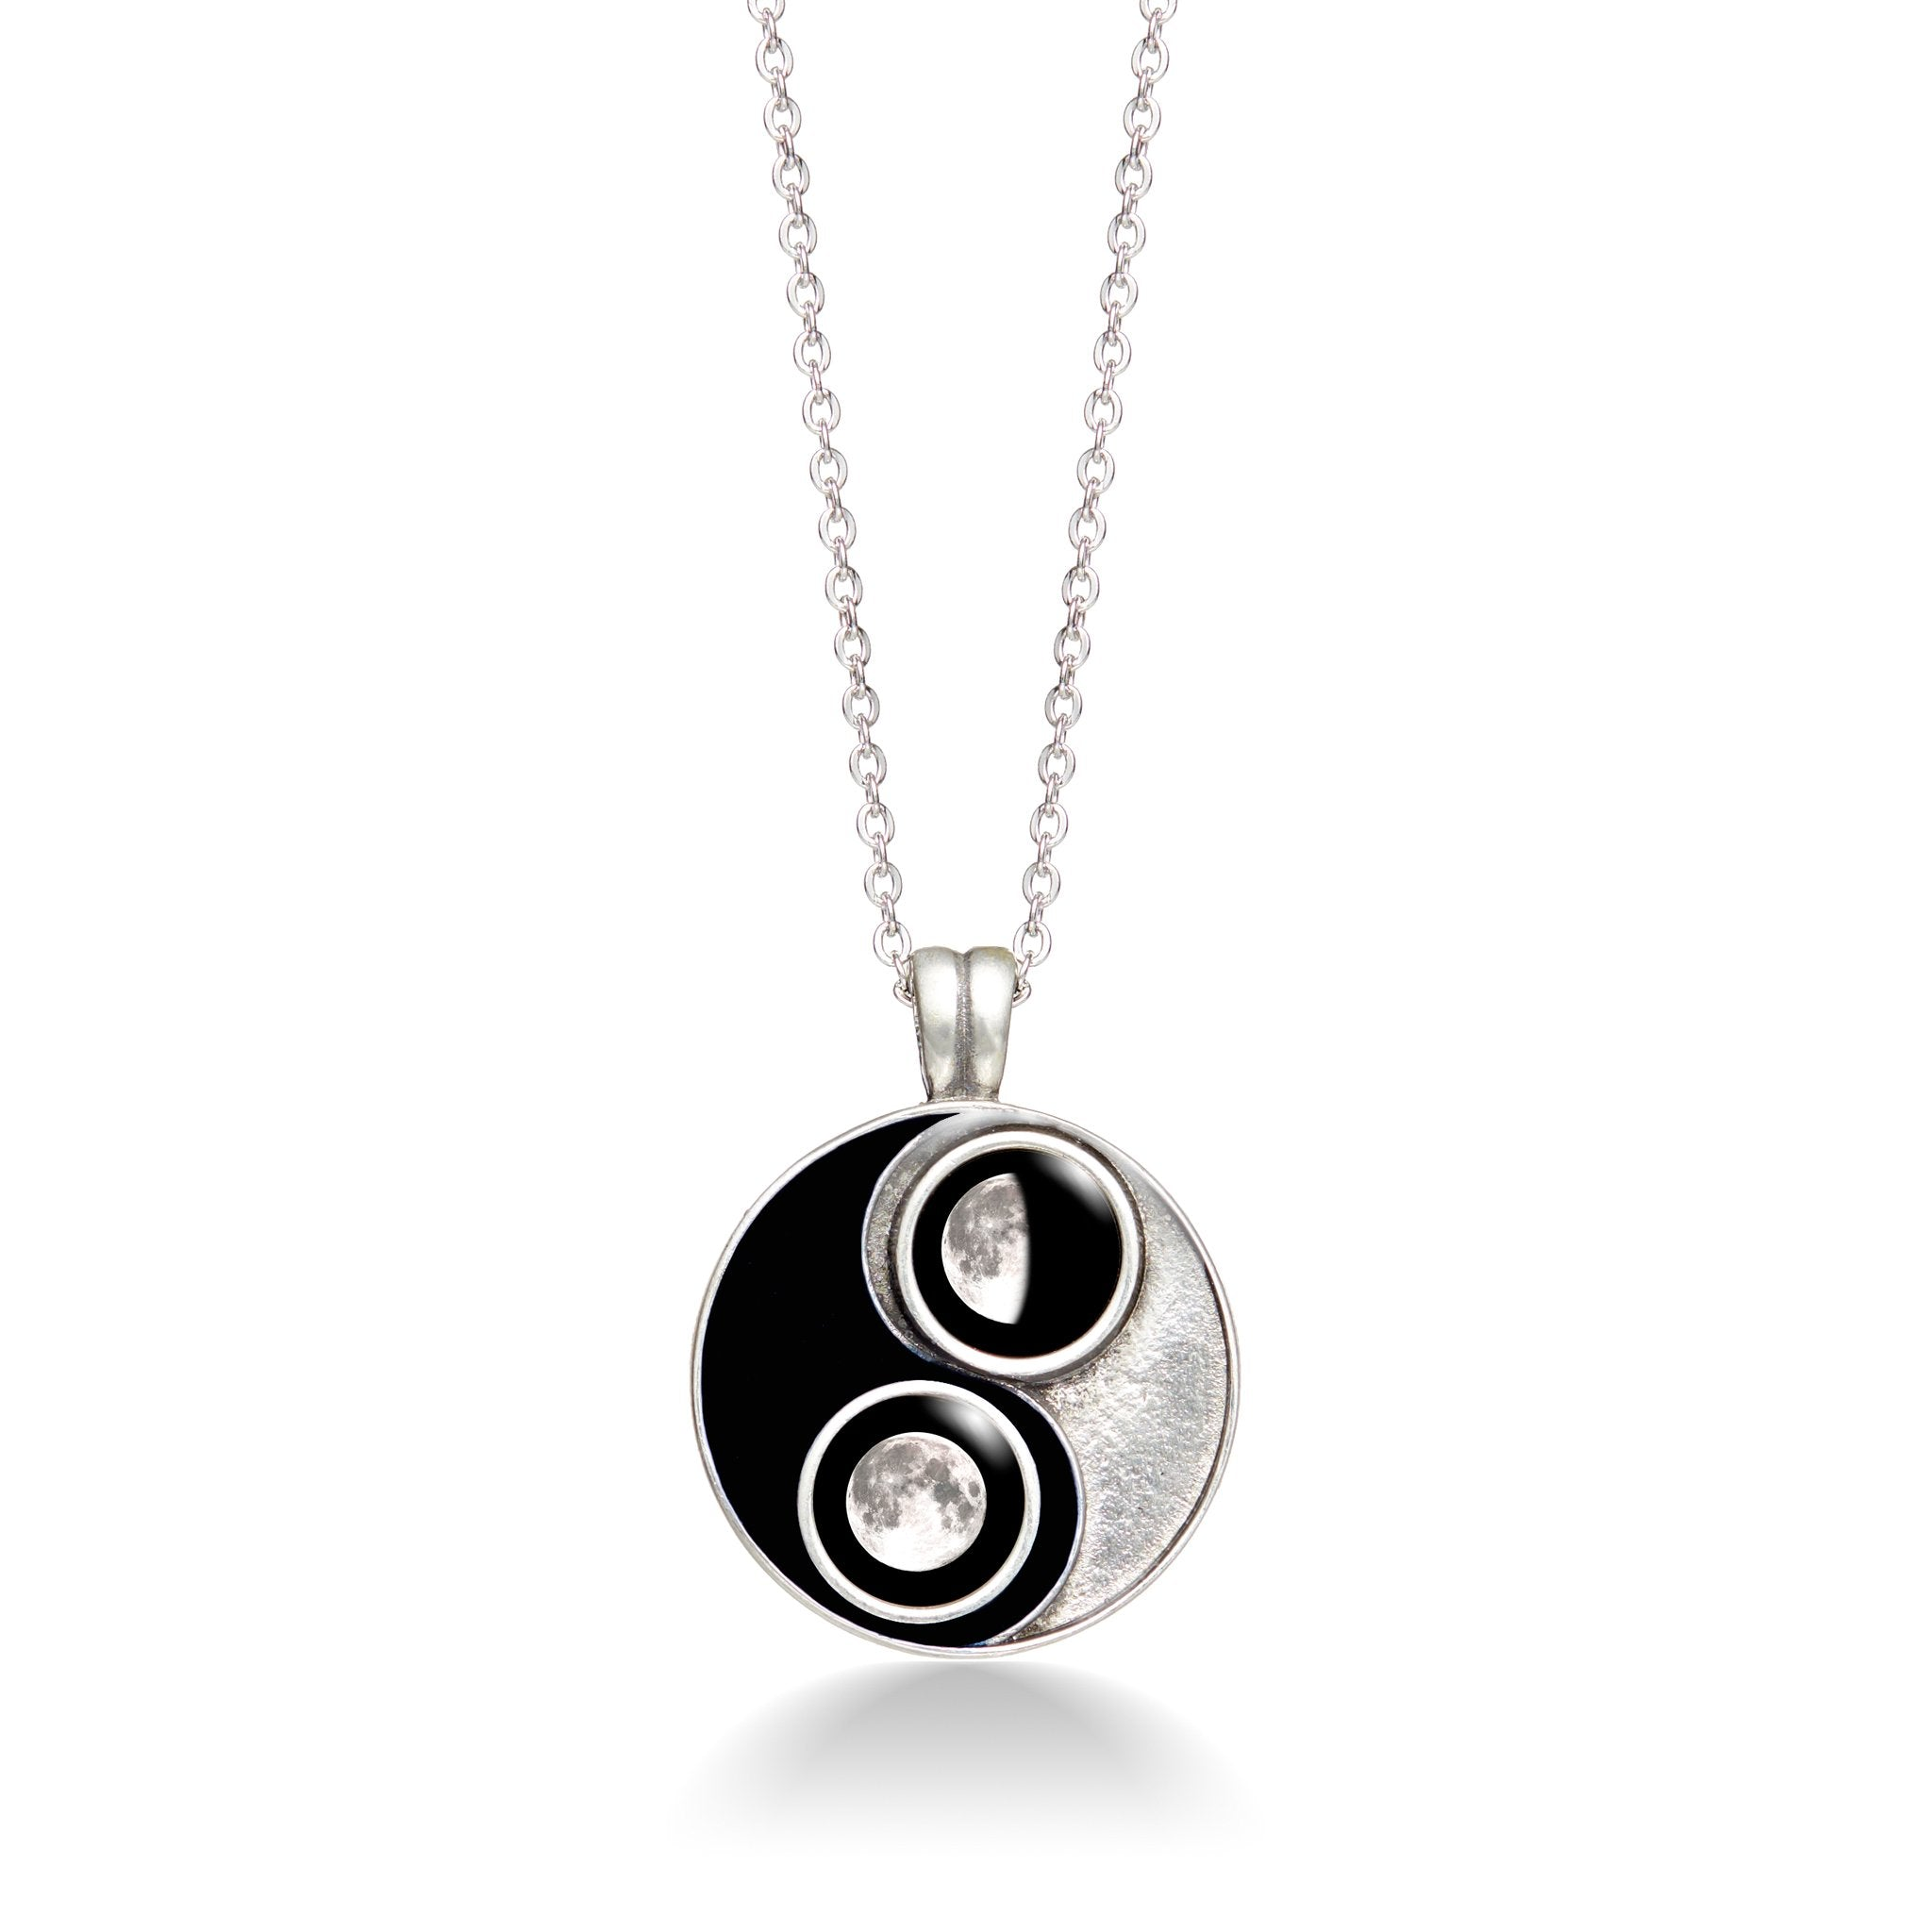 Midnight Taijitu Necklace in Black